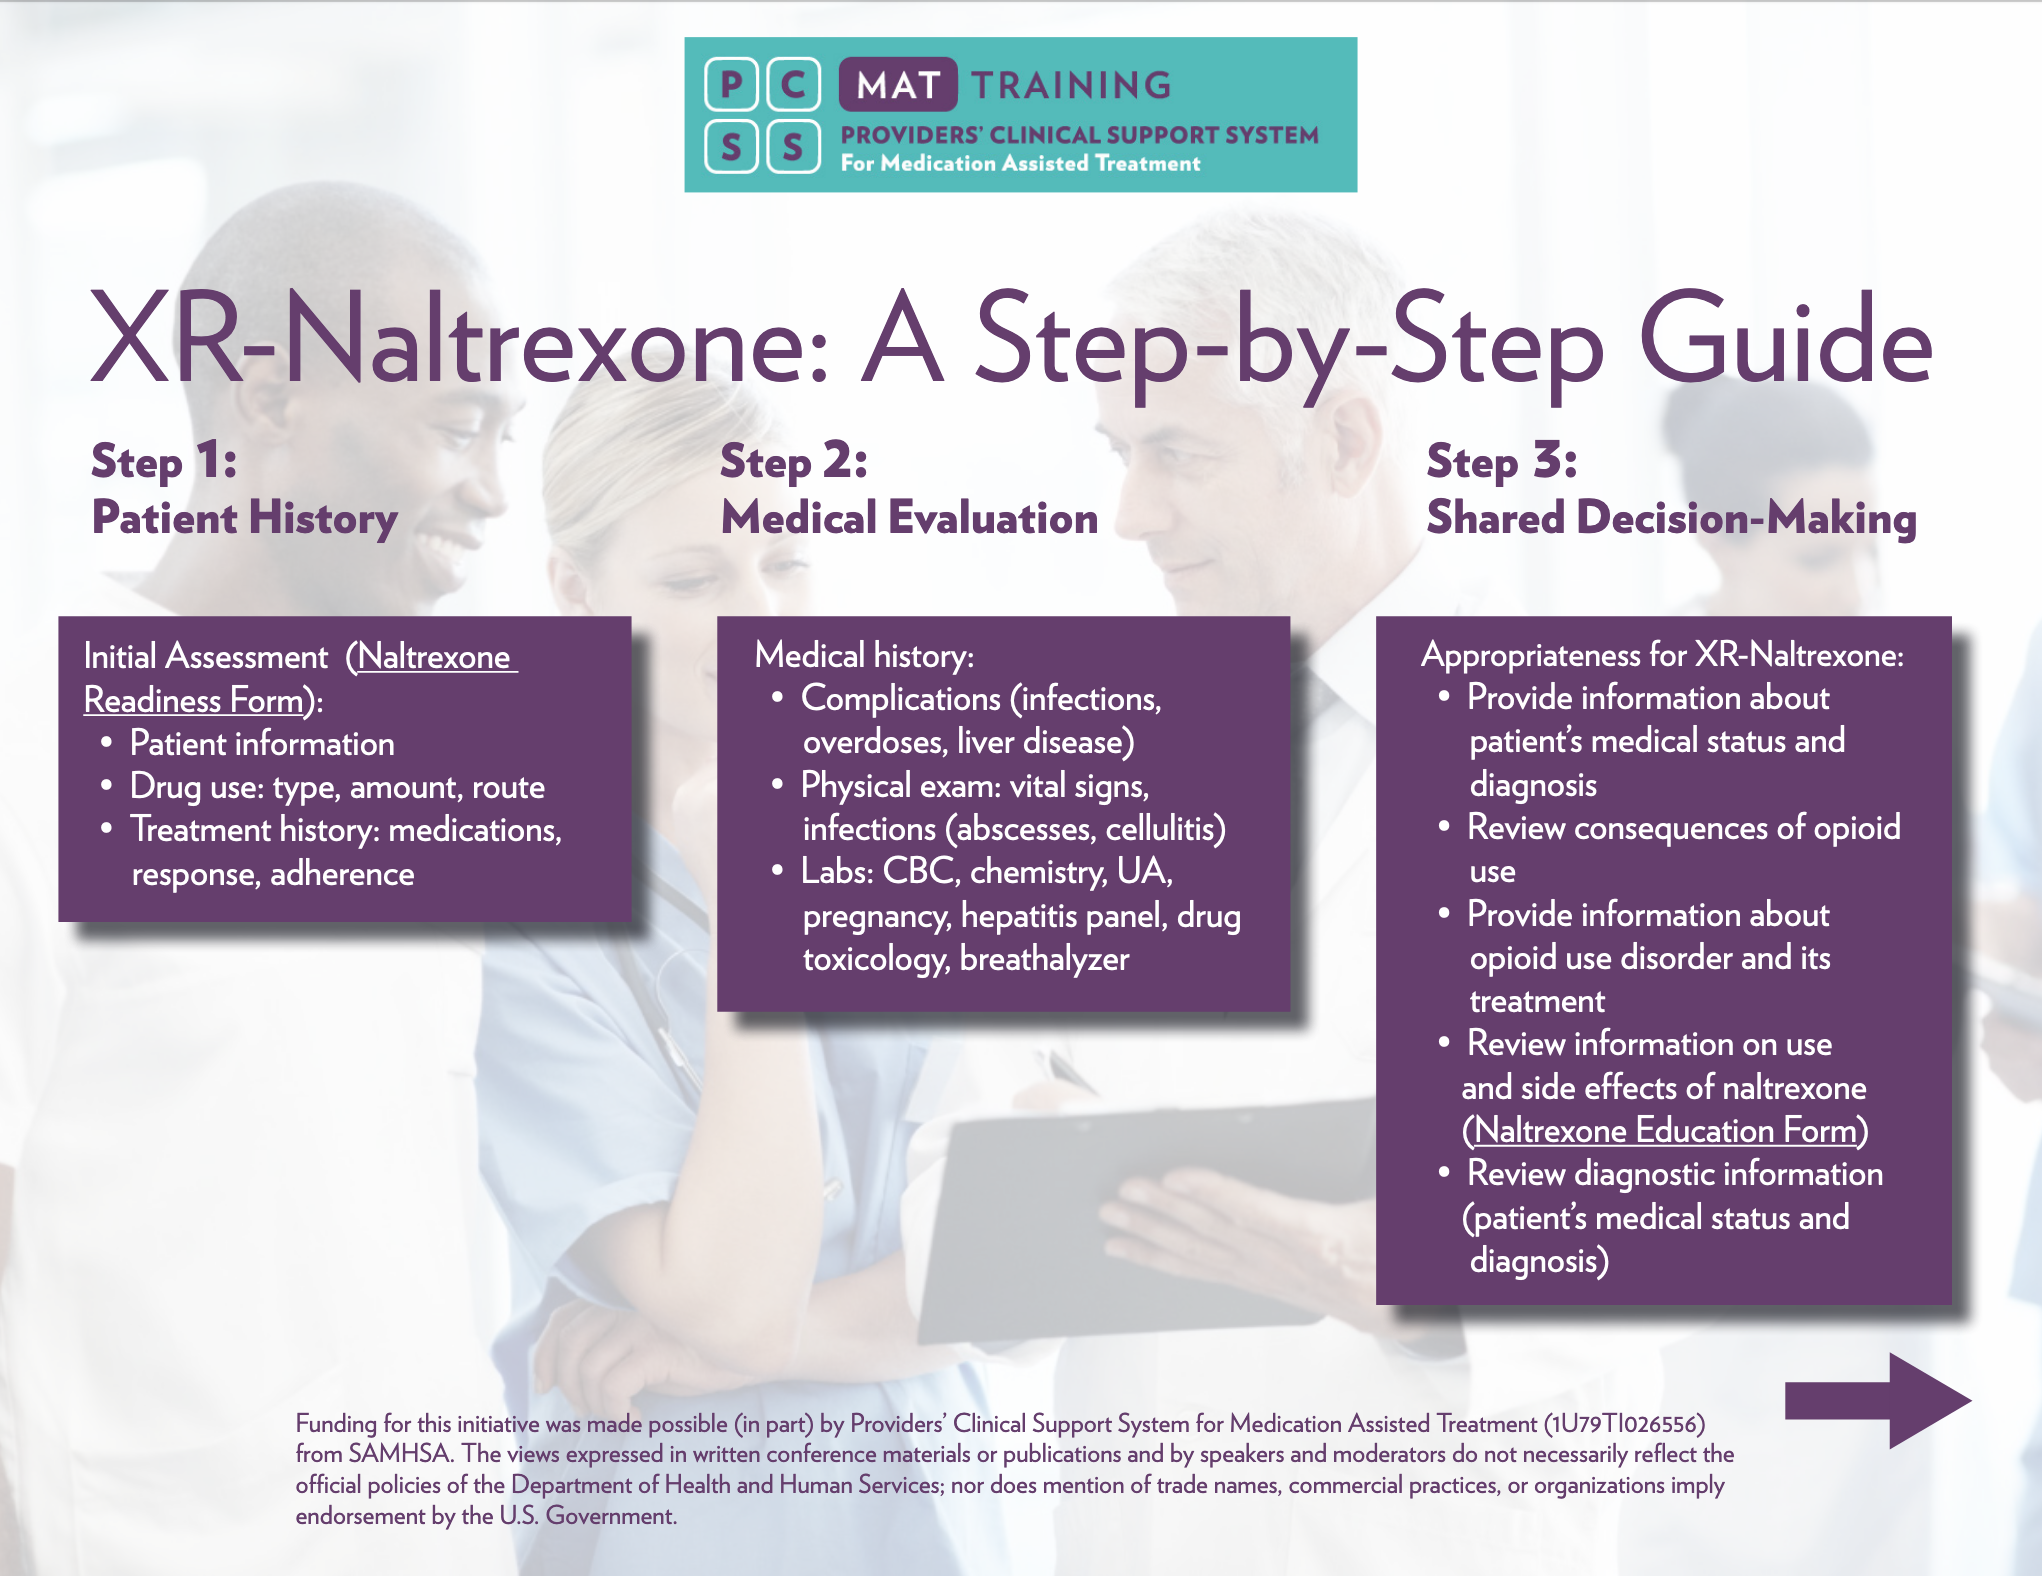 Download XR-Naltrexone: A Step-by-Step Guide in PDF format.